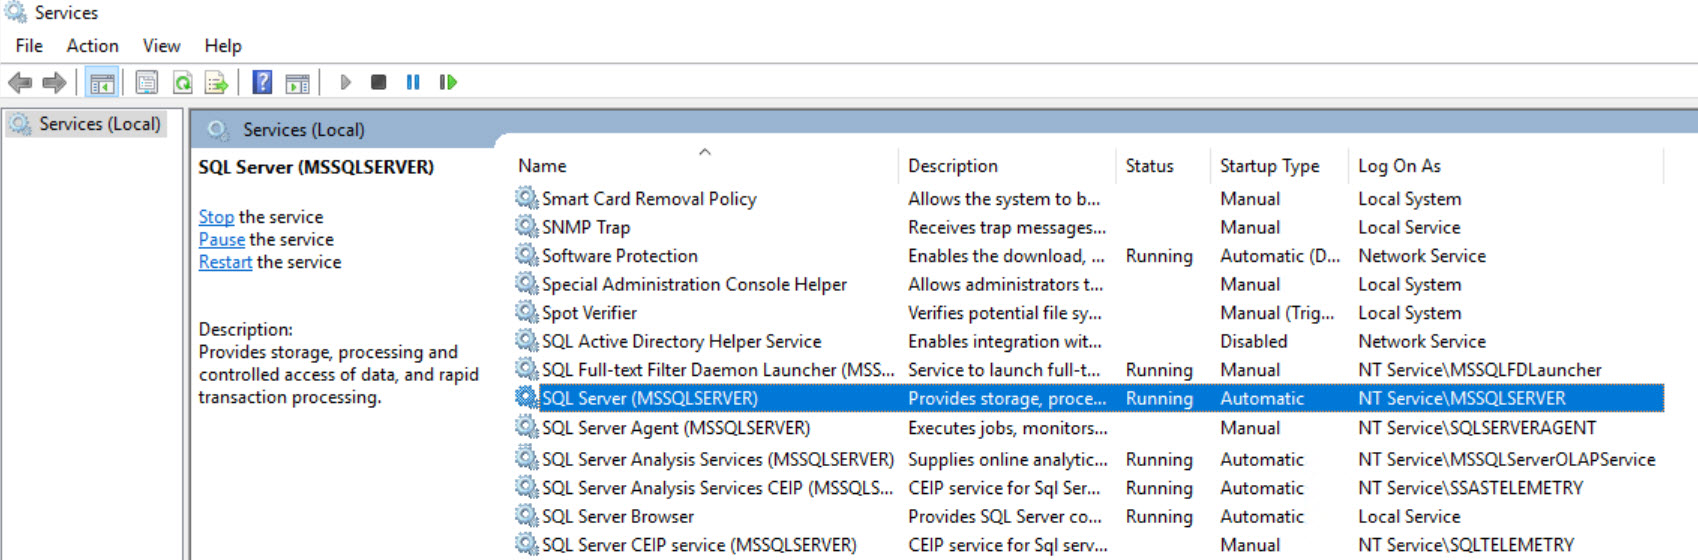 How to Find Service Account for SQL Server and SQL Server